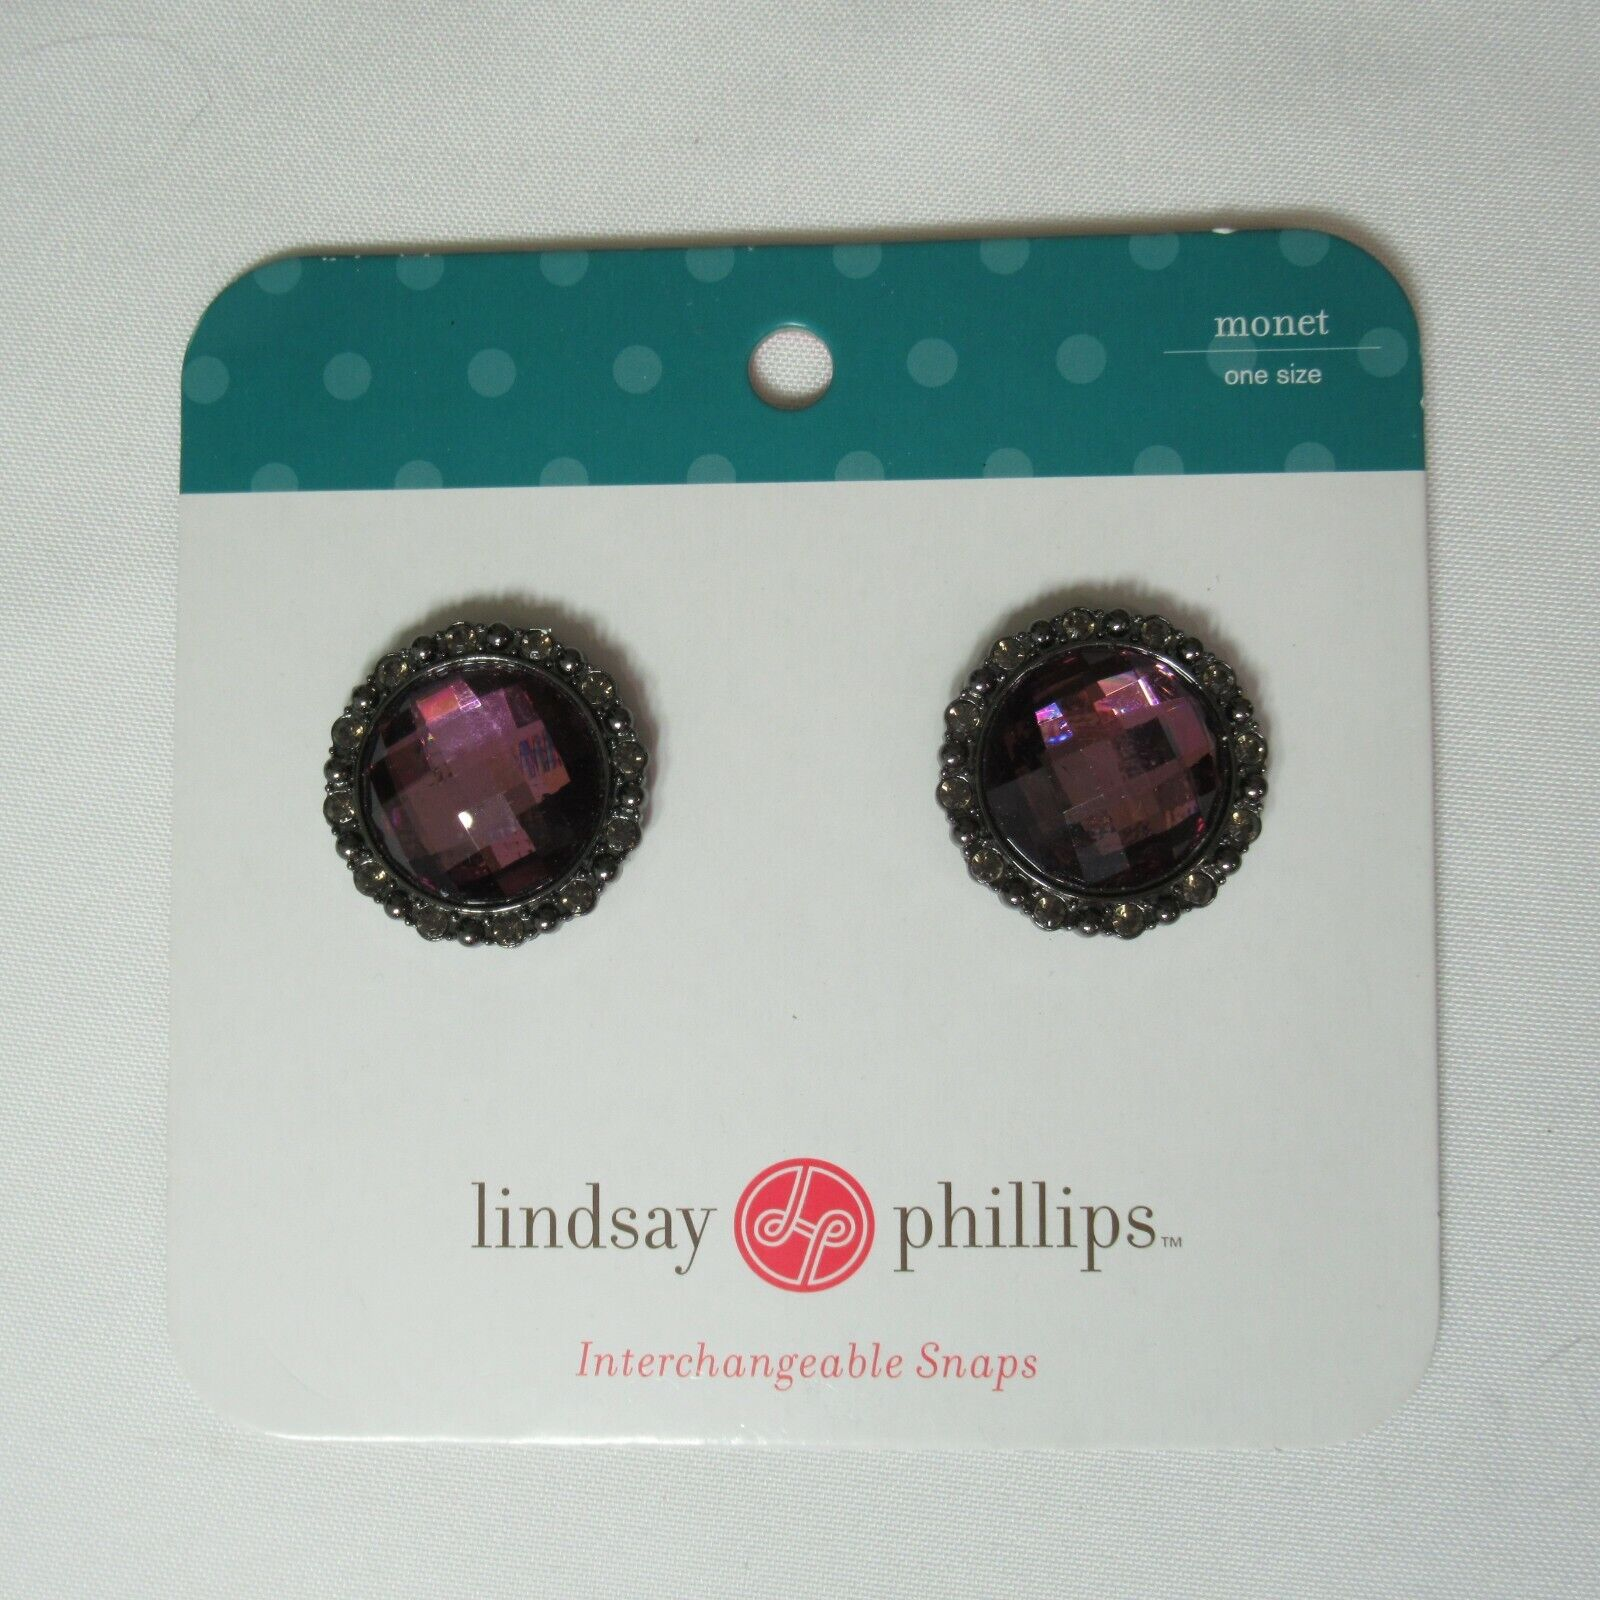 Lindsay Phillips Snaps Shoe Charms Purple Amethyst Faceted Stone Gem 1.5